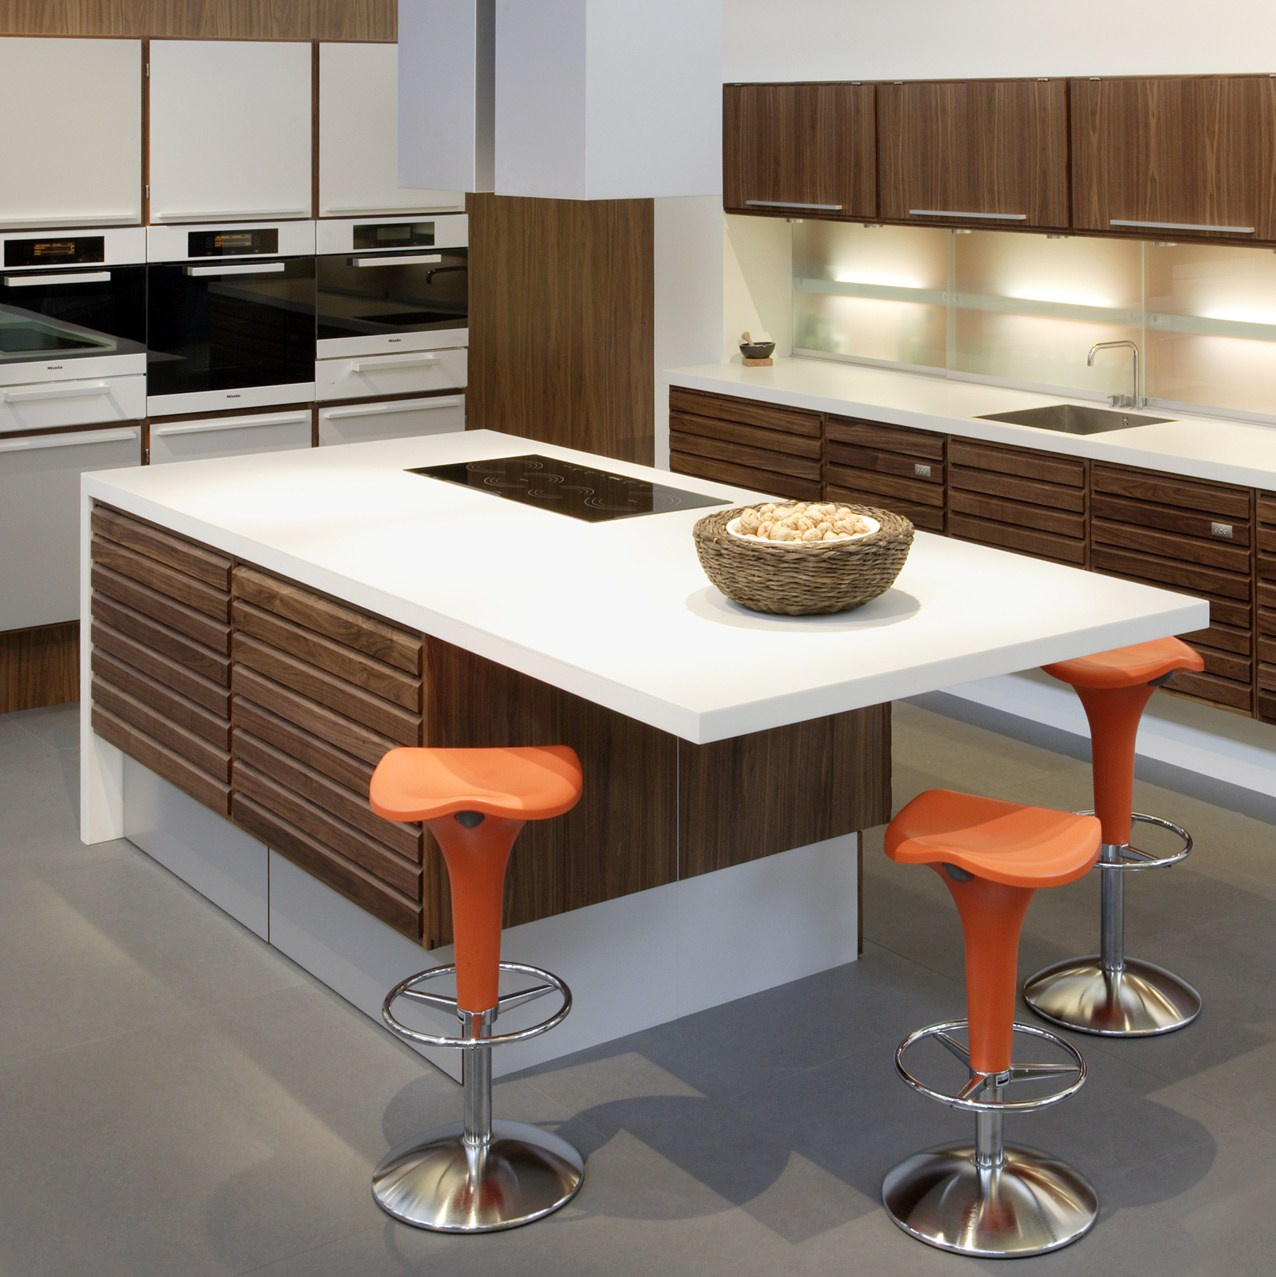 Granite experts on disadvantages of corian granite4less blog for Corian per square foot